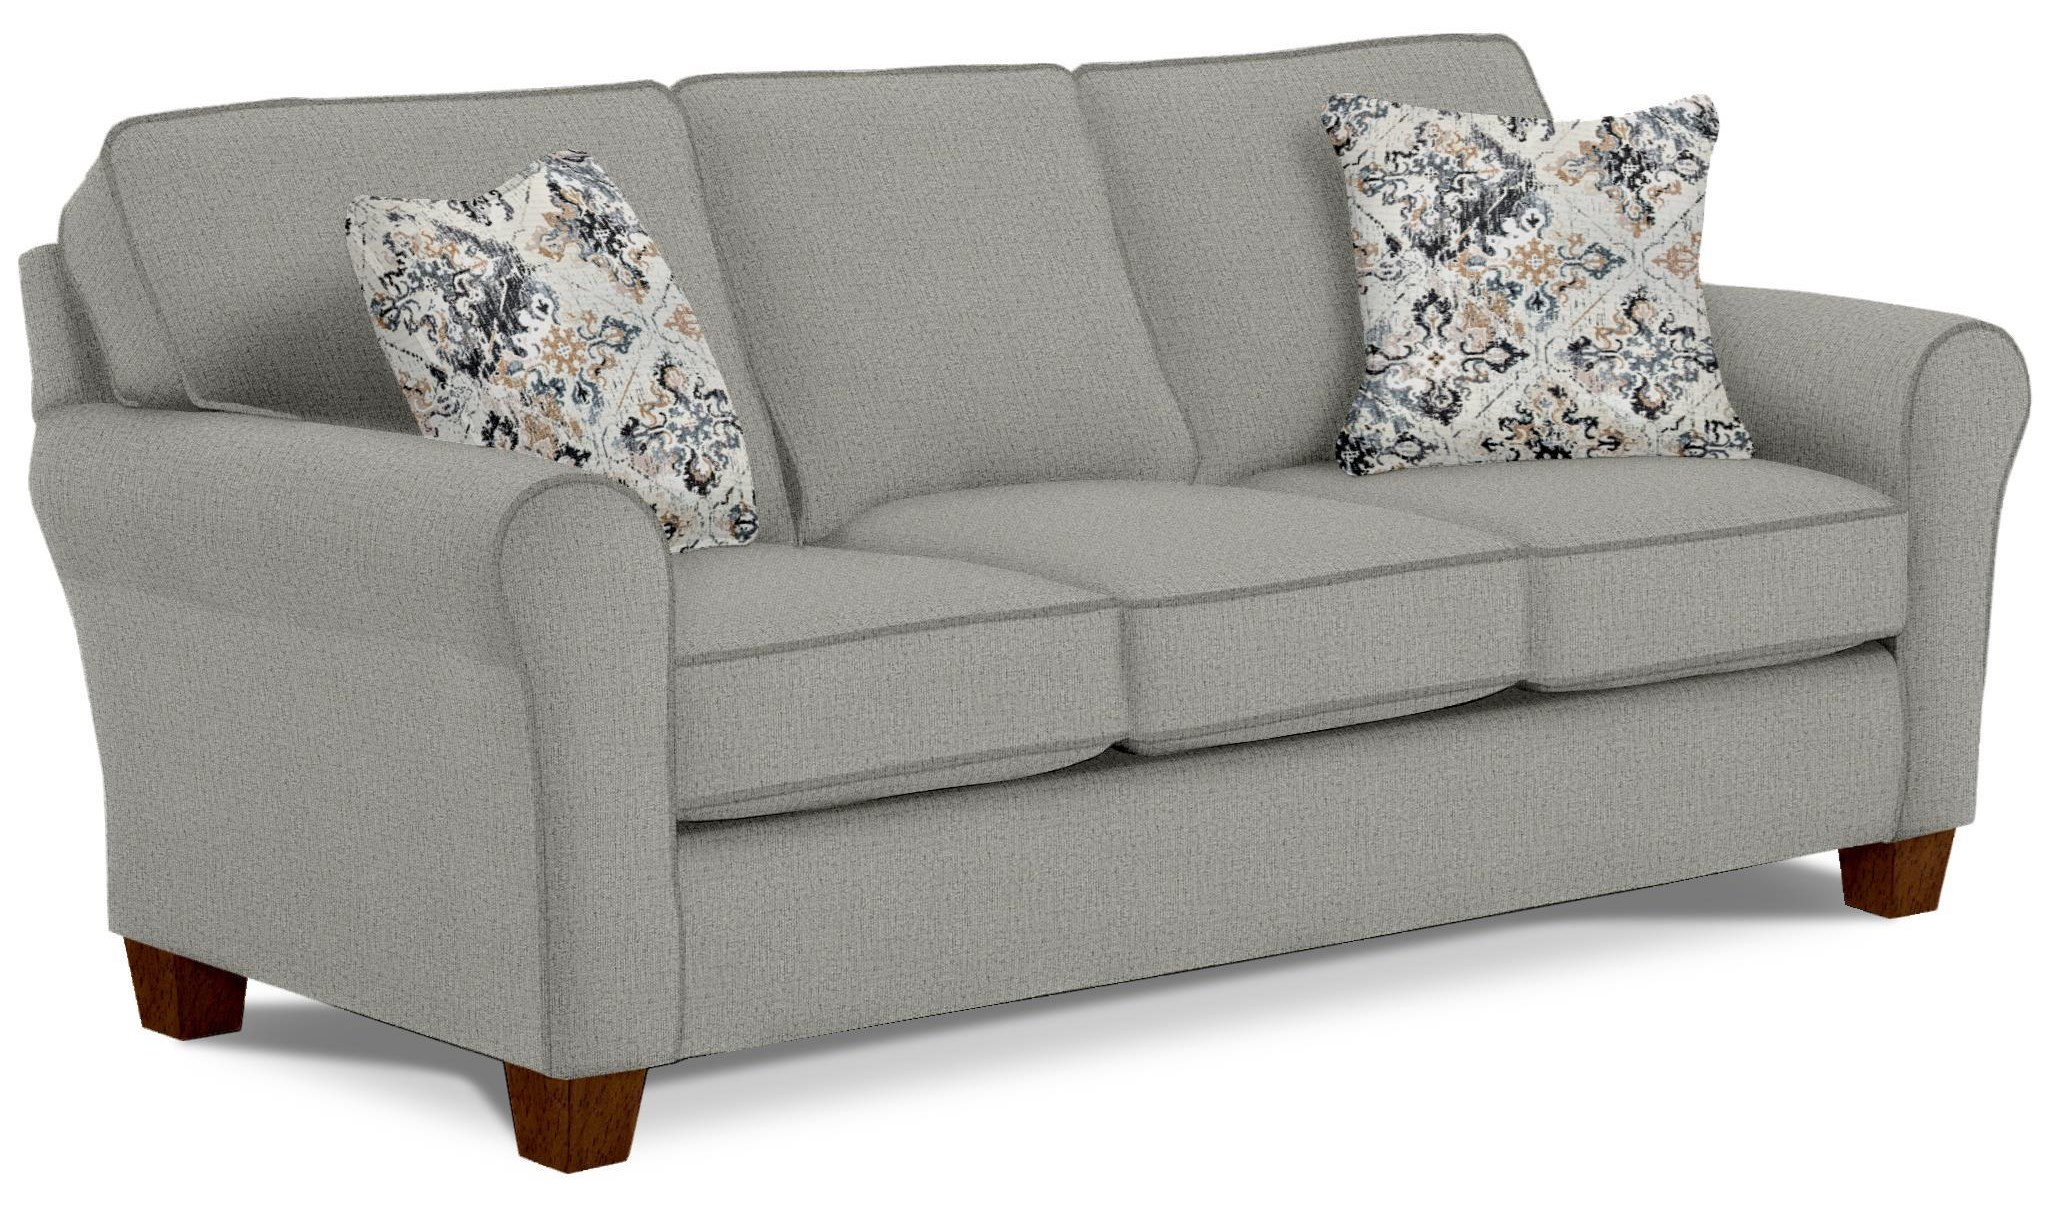 Claussen Sofa by Best Home Furnishings at Crowley Furniture & Mattress